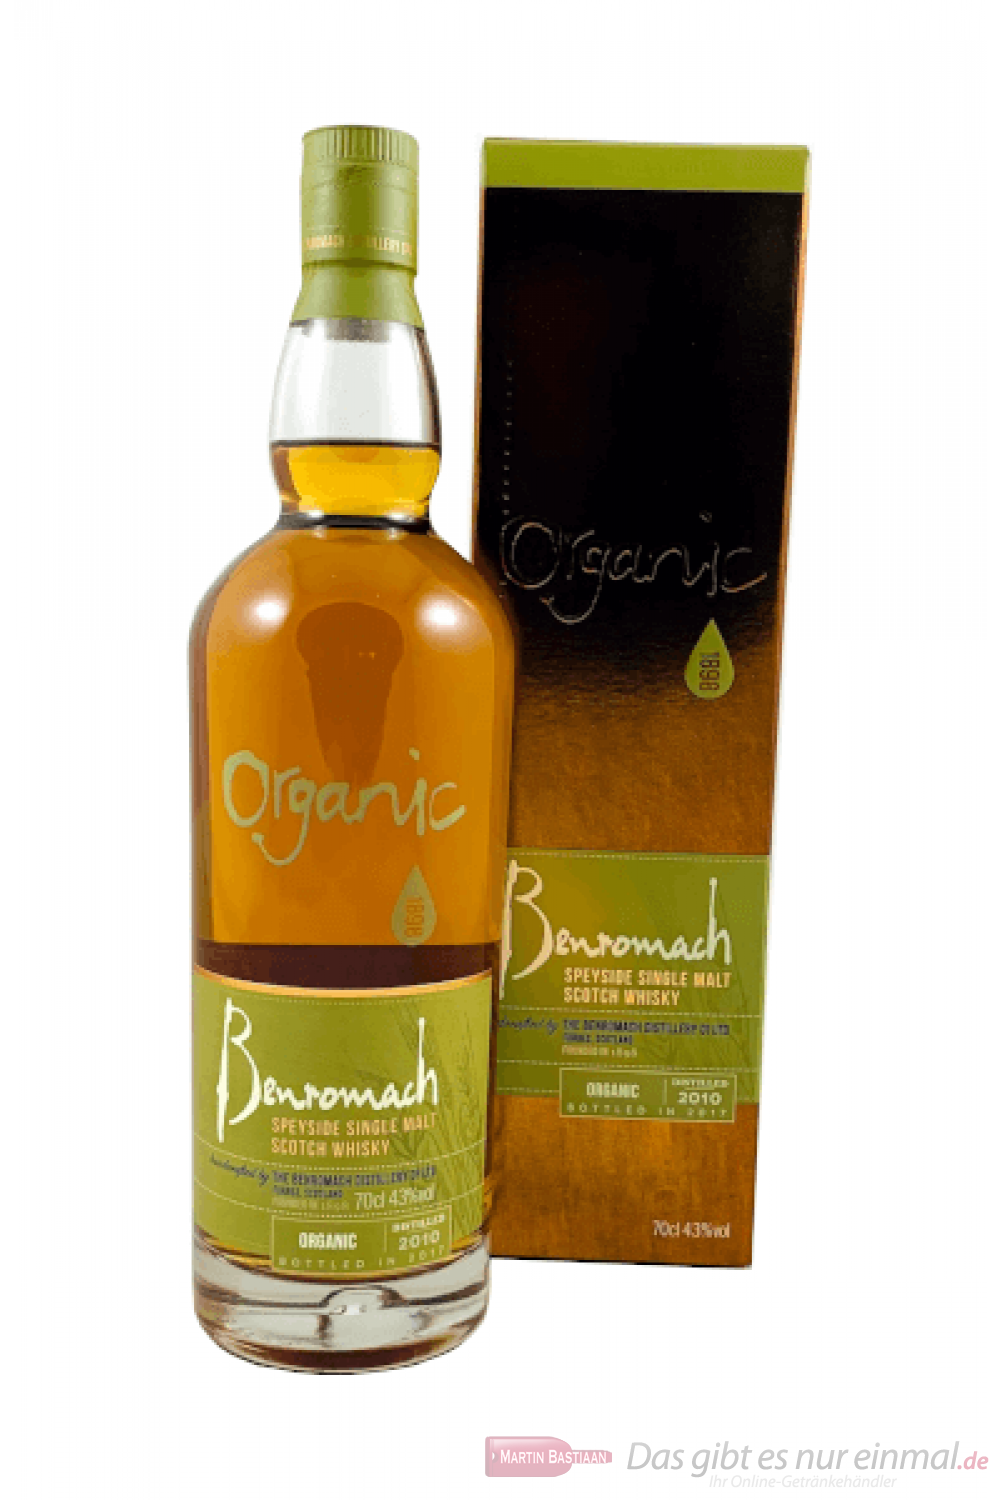 Benromach Organic Speyside Single Malt Scotch Whisky 0,7l